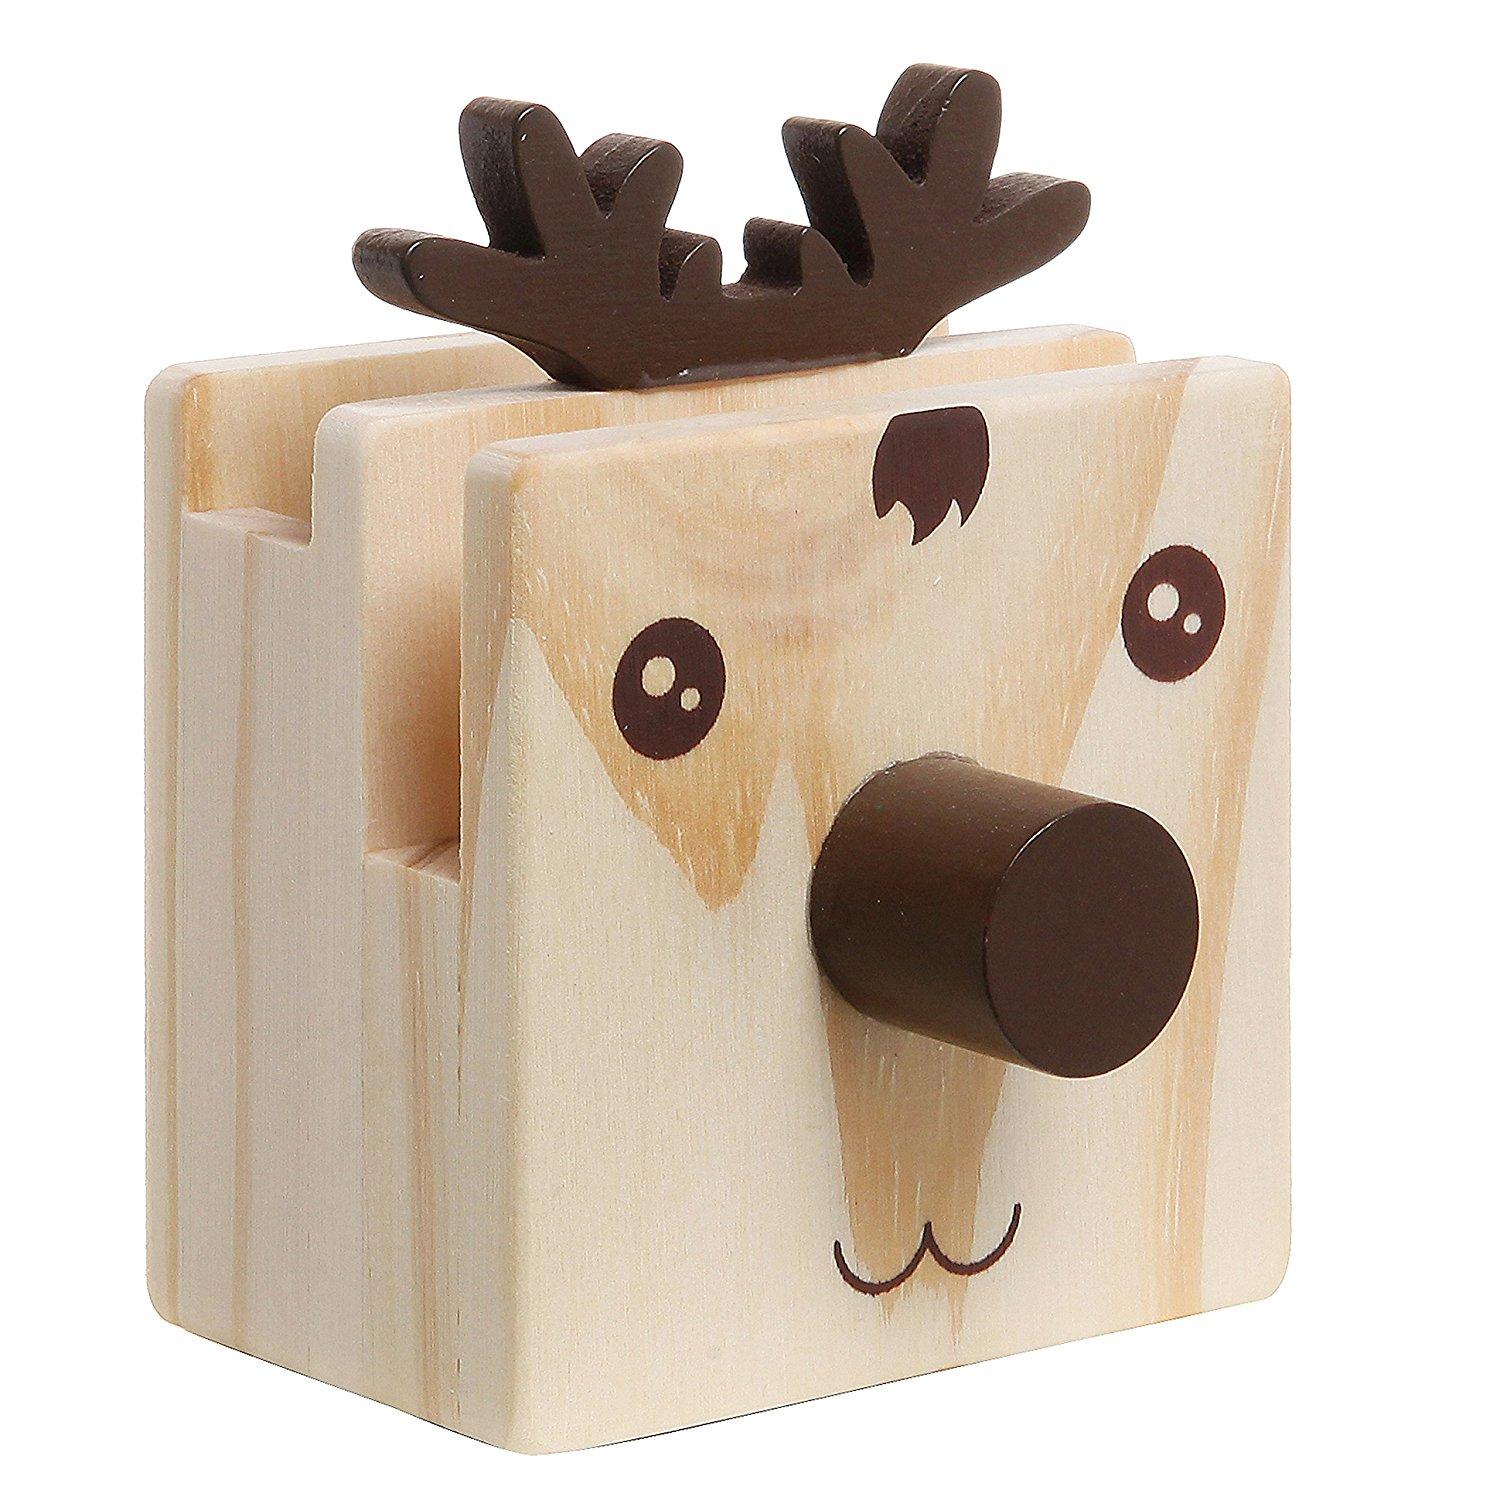 Humorous Reindeer Design Wood Desktop Pencil Cup Organizer